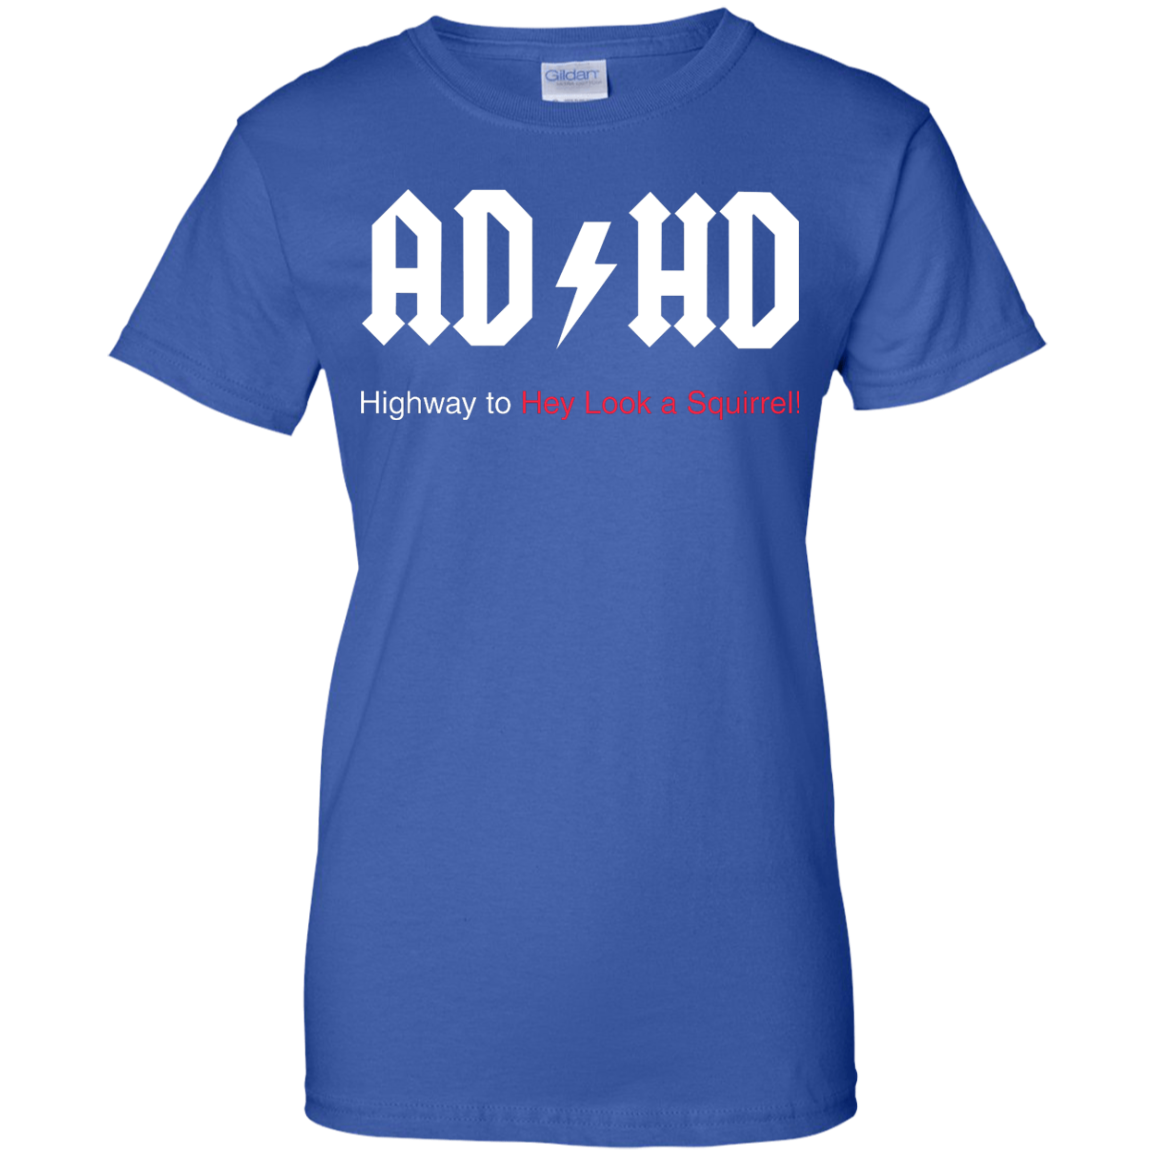 image 319px ADHD Awareness Shirt, Highway to Hey Look a Squirrel T Shirts, Hoodies